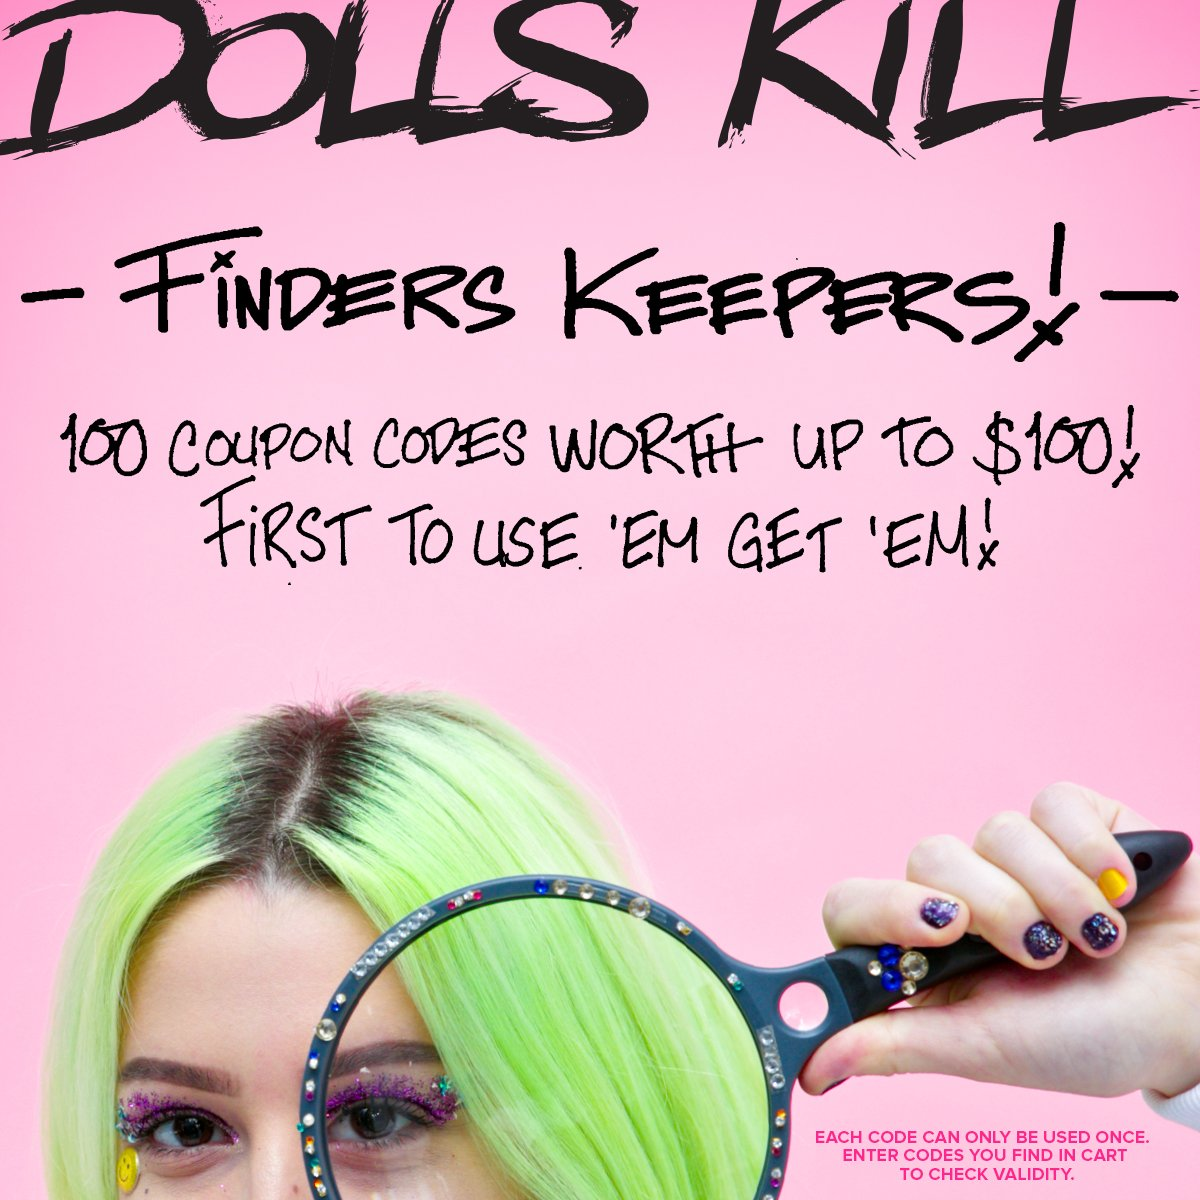 Dollskill coupon code